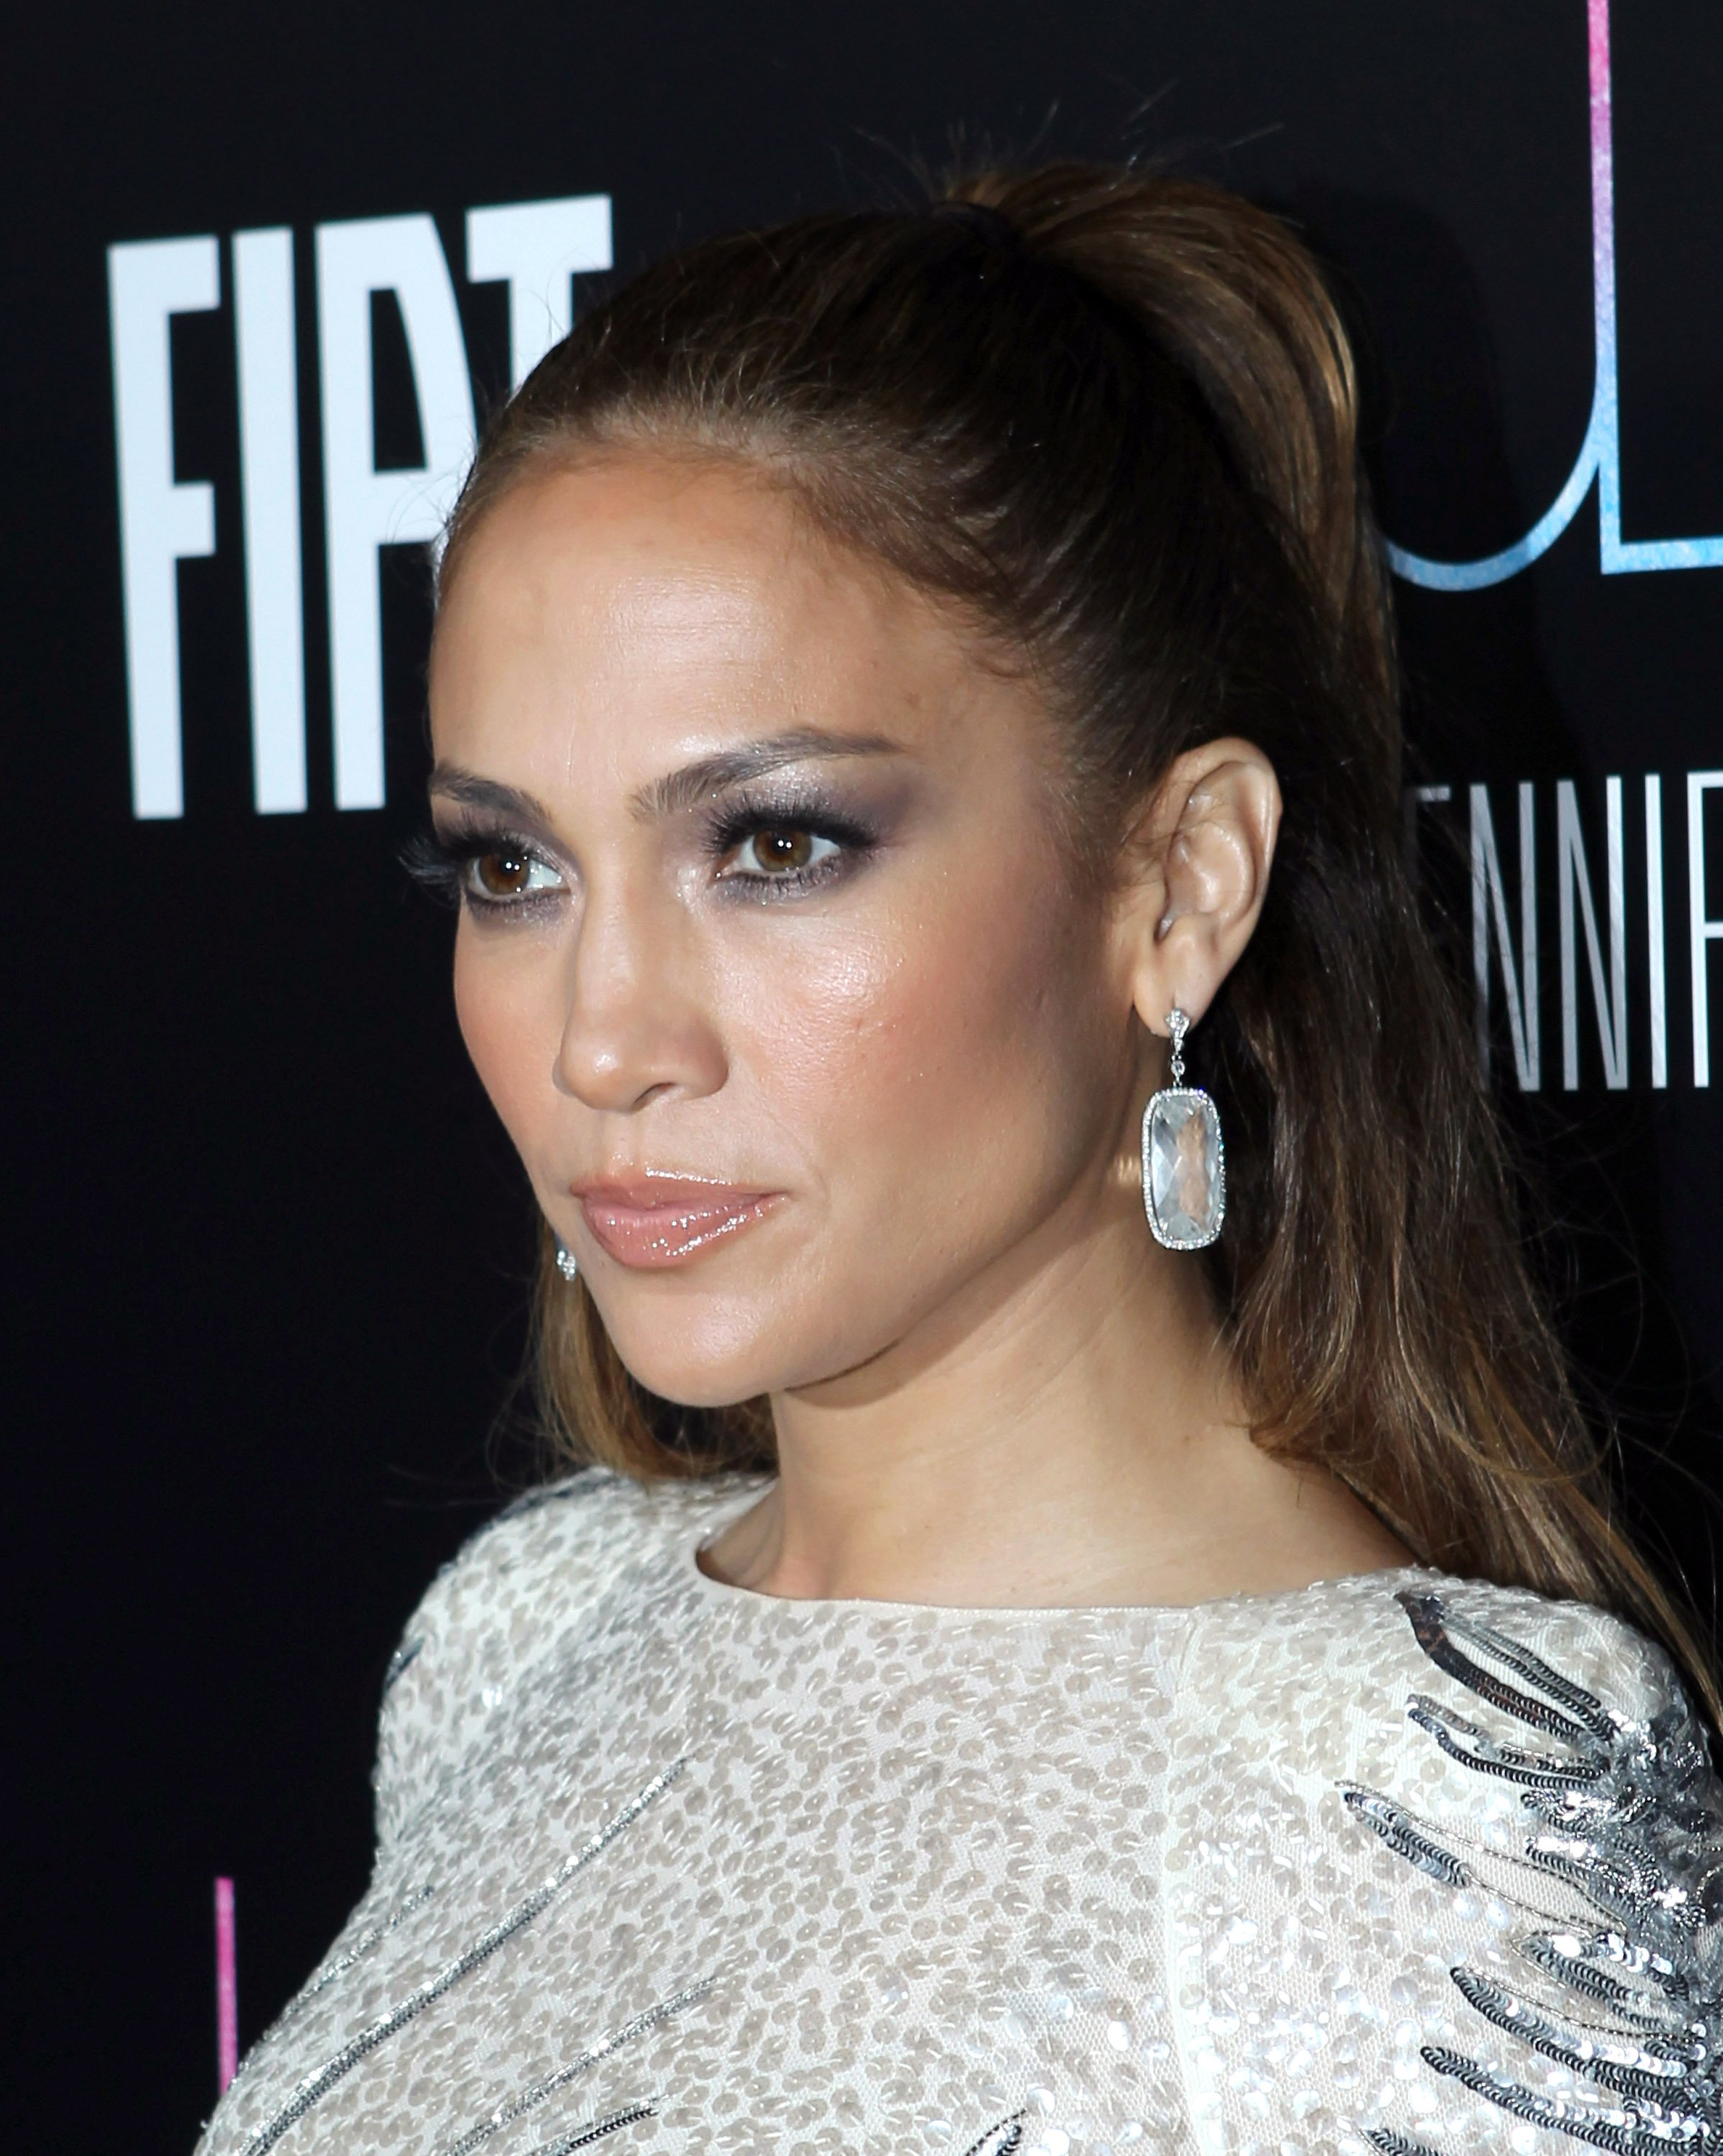 """Jennifer Lopez attends the """"Fiat Presents Jennifer Lopez Official American Music Awards"""" after party in West Hollywood, California. 